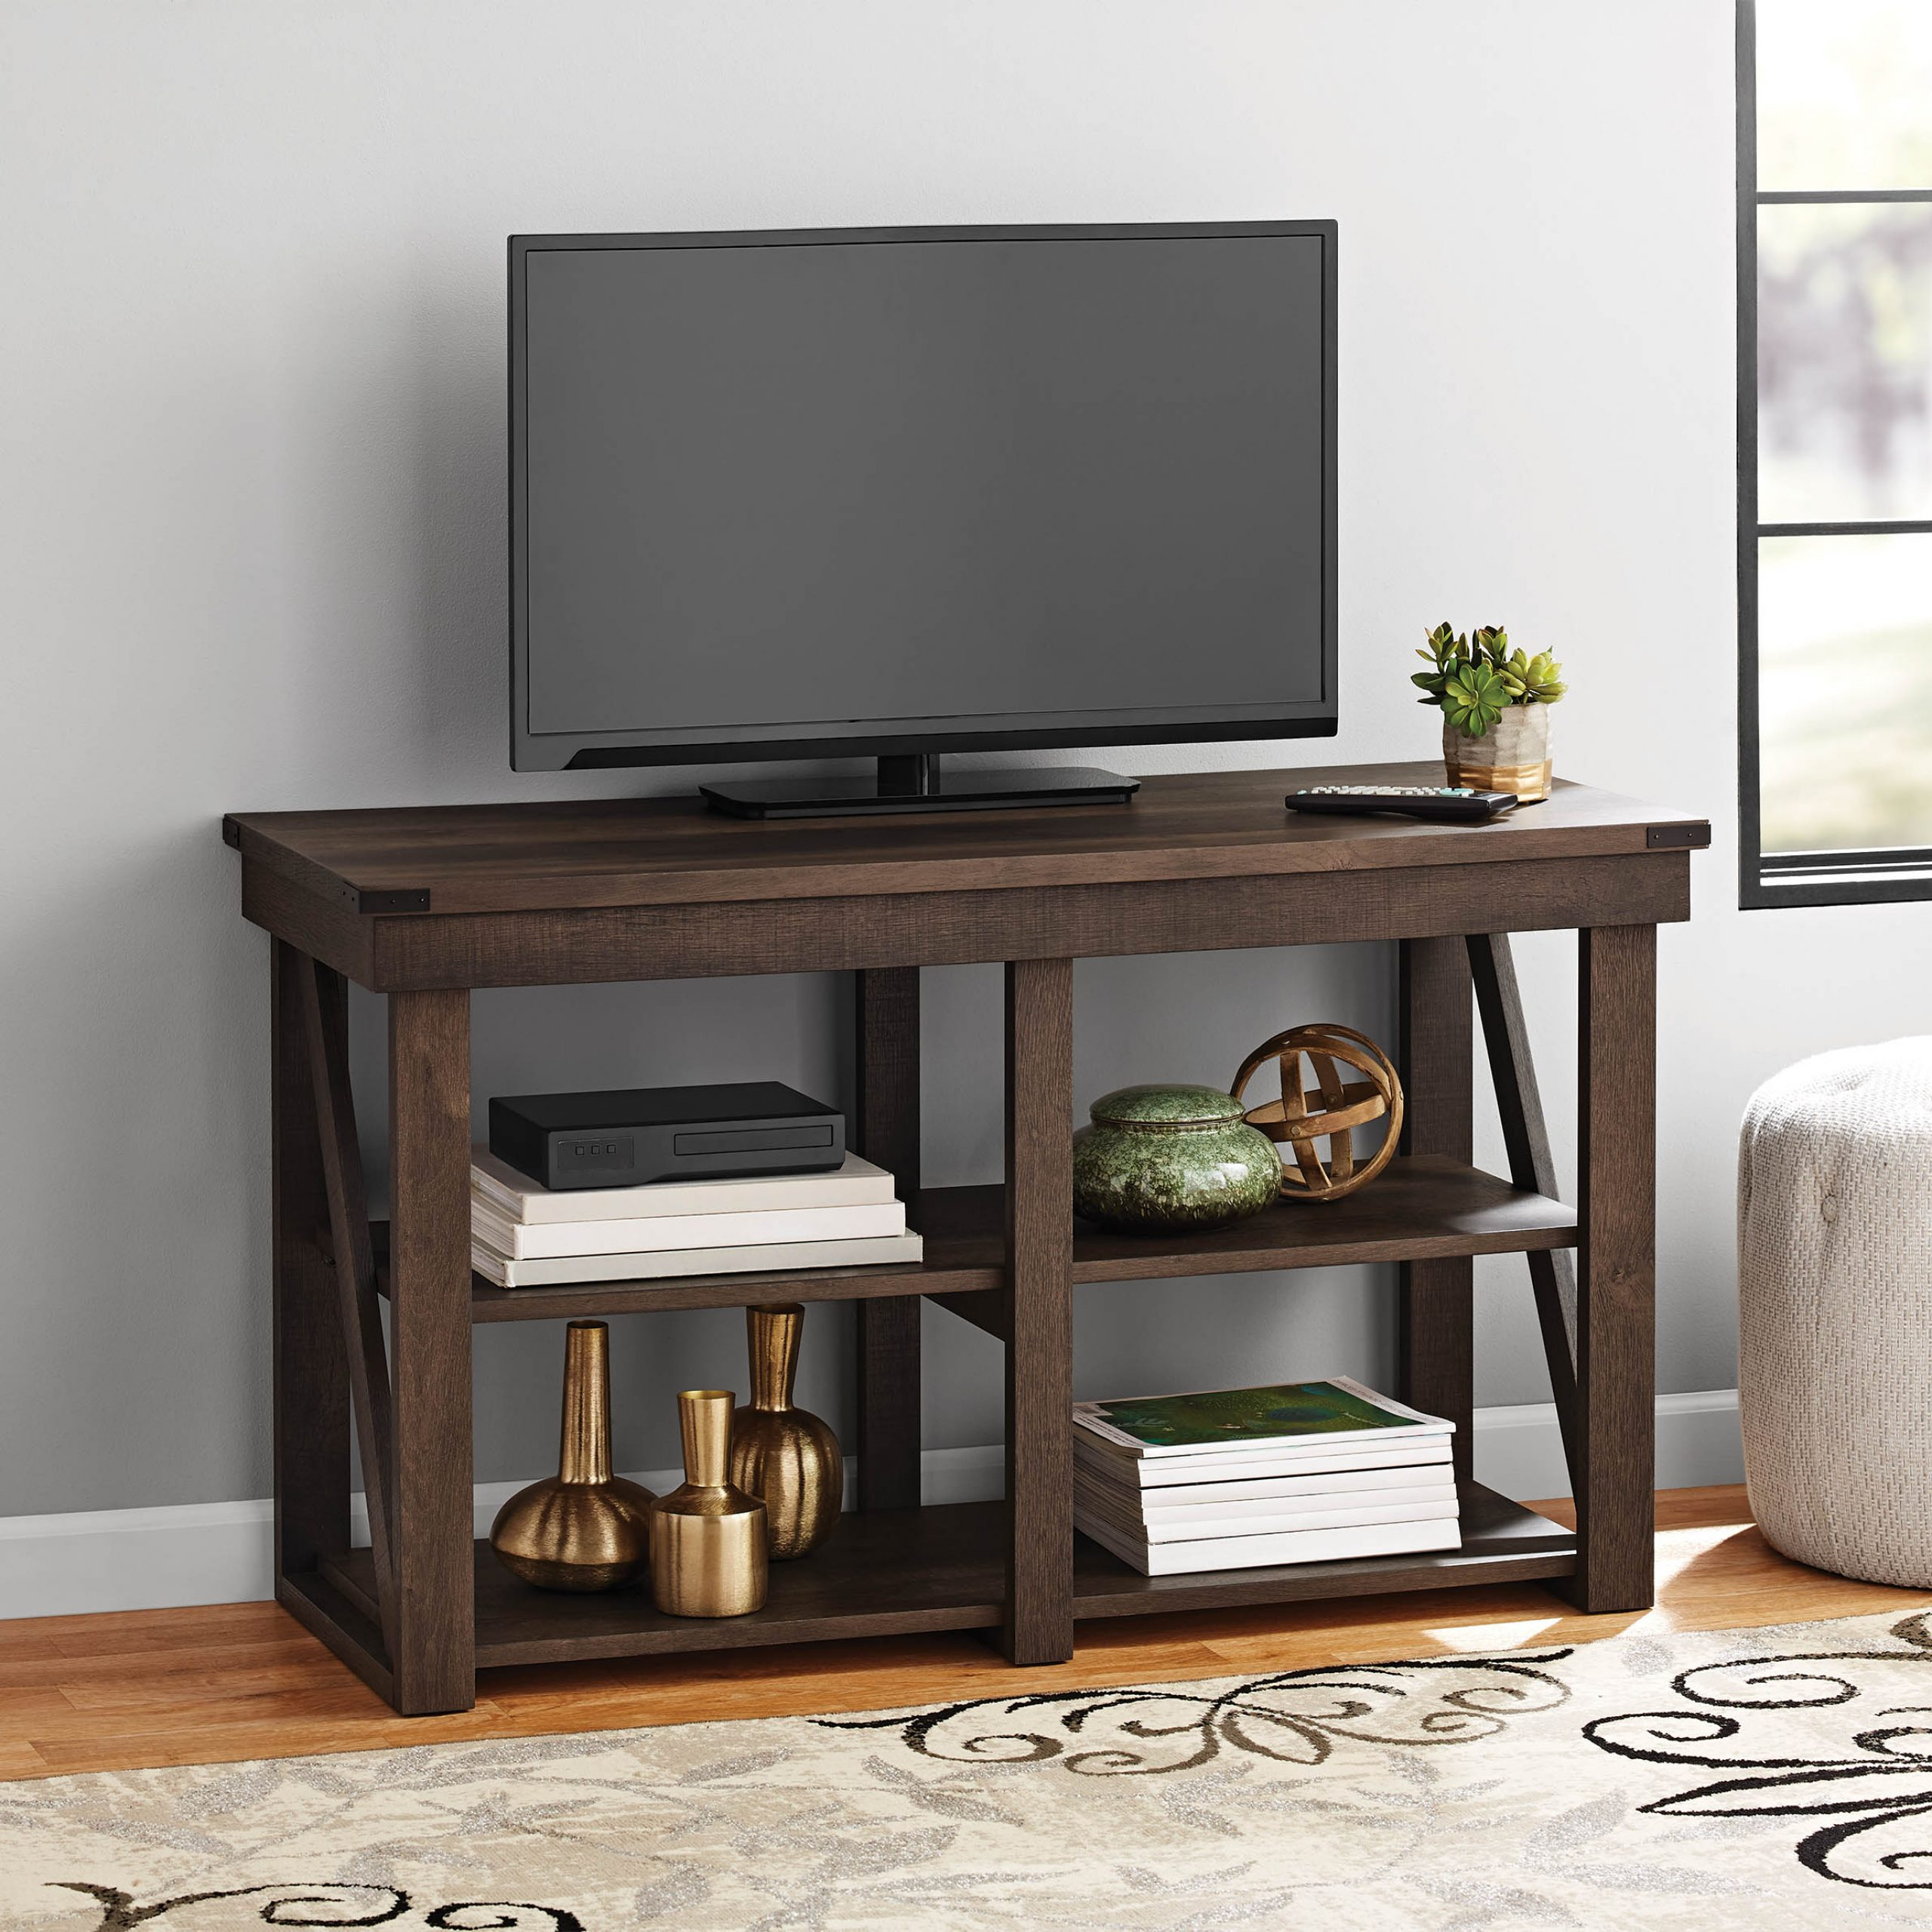 """Mainstays Lawson Tv Stand For Tvs Up To 55"""", Espresso Within Twila Tv Stands For Tvs Up To 55"""" (View 9 of 20)"""